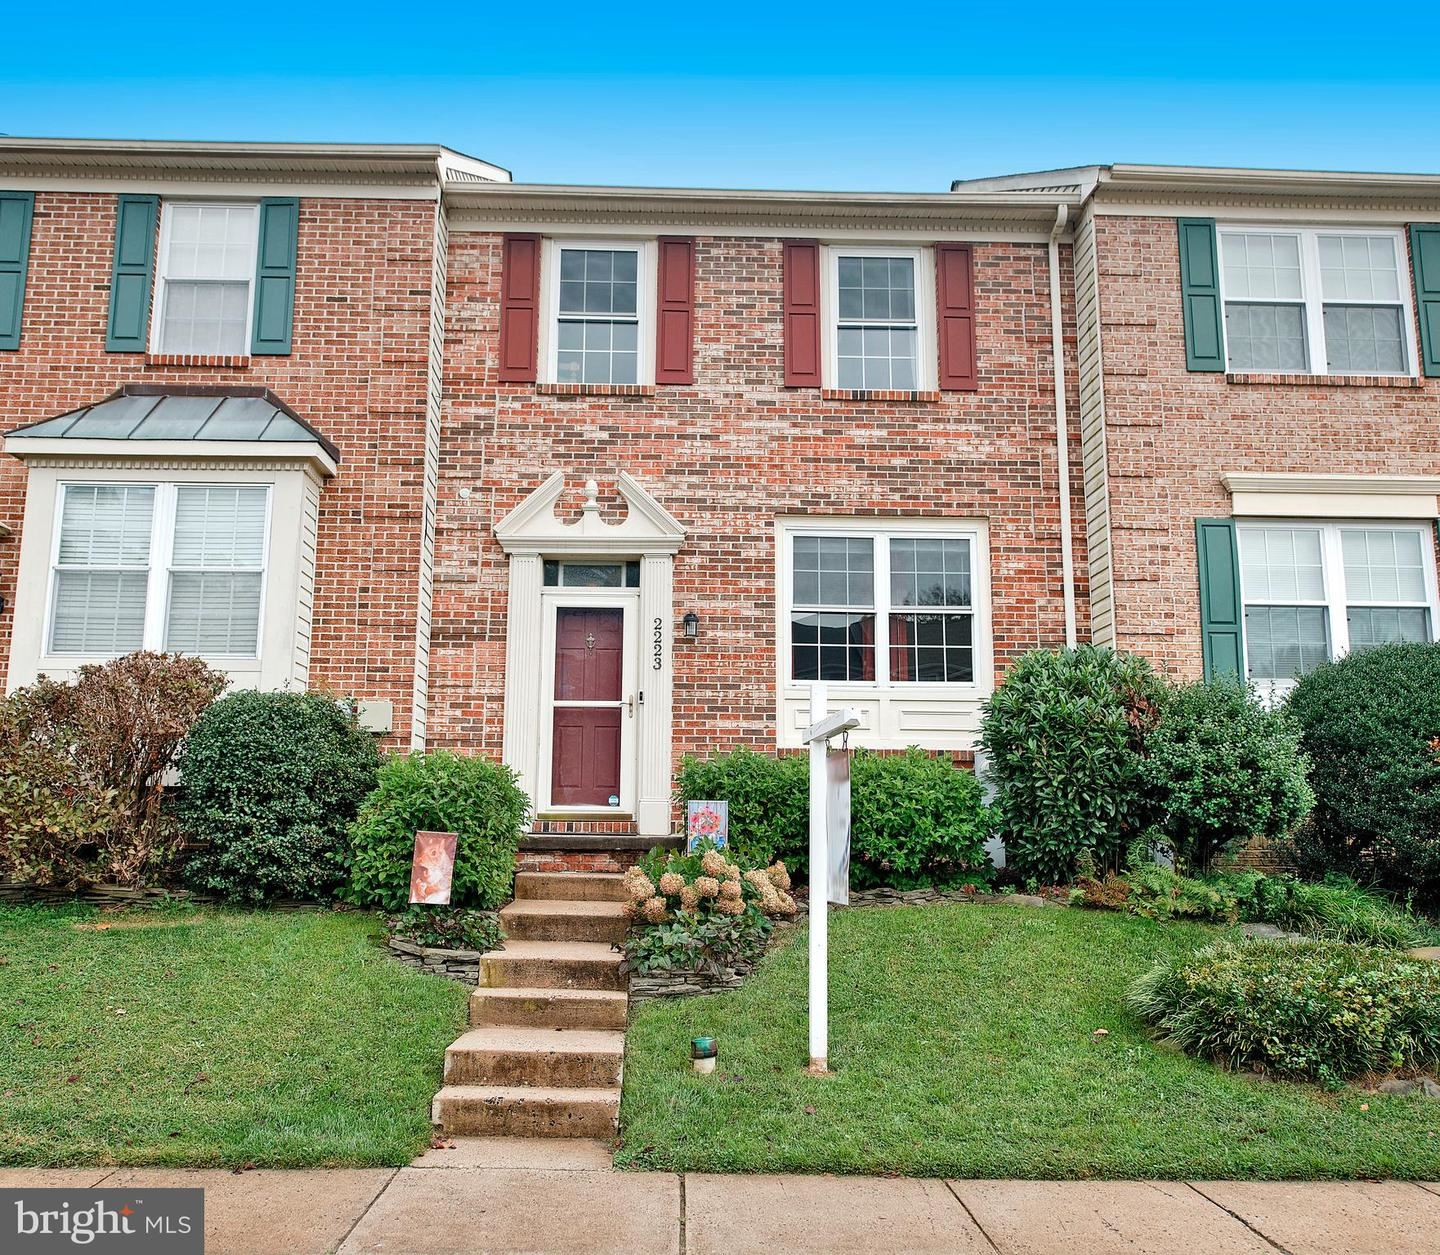 2223 CANTLEY DR, Forest Hill, MD 21050 - MLS#: MDHR2003532